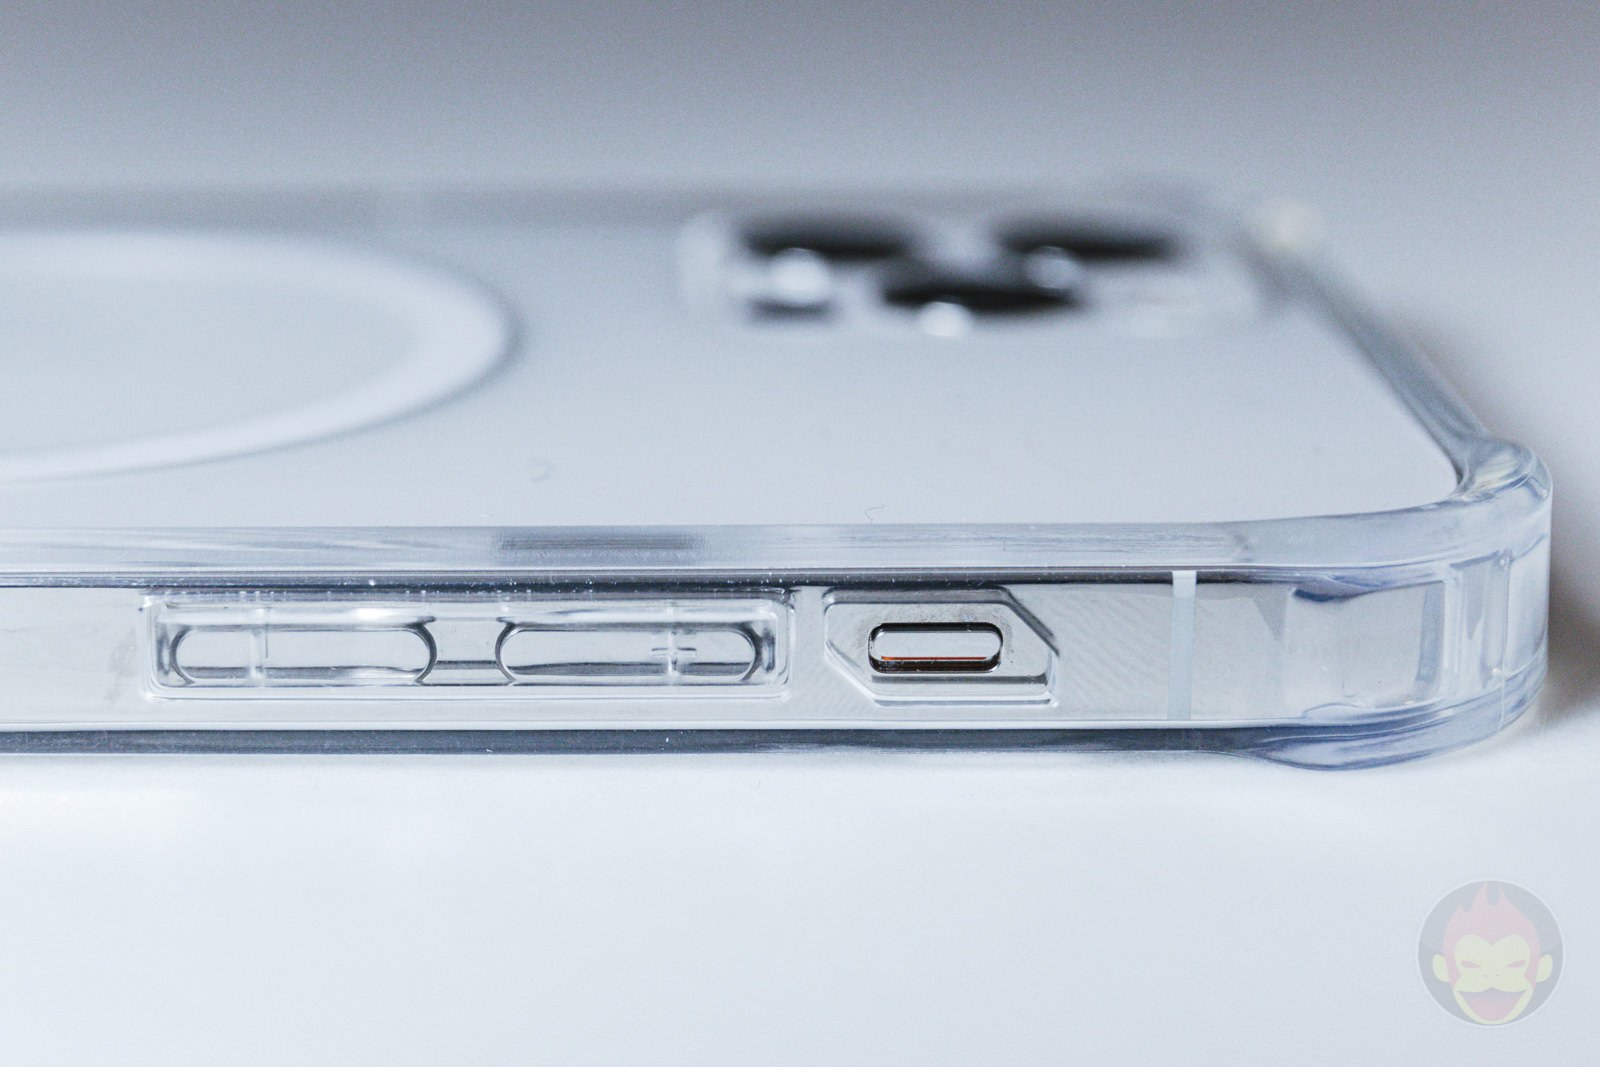 Beyeah iPhone12Pro Clear MagSafe Case Review 06